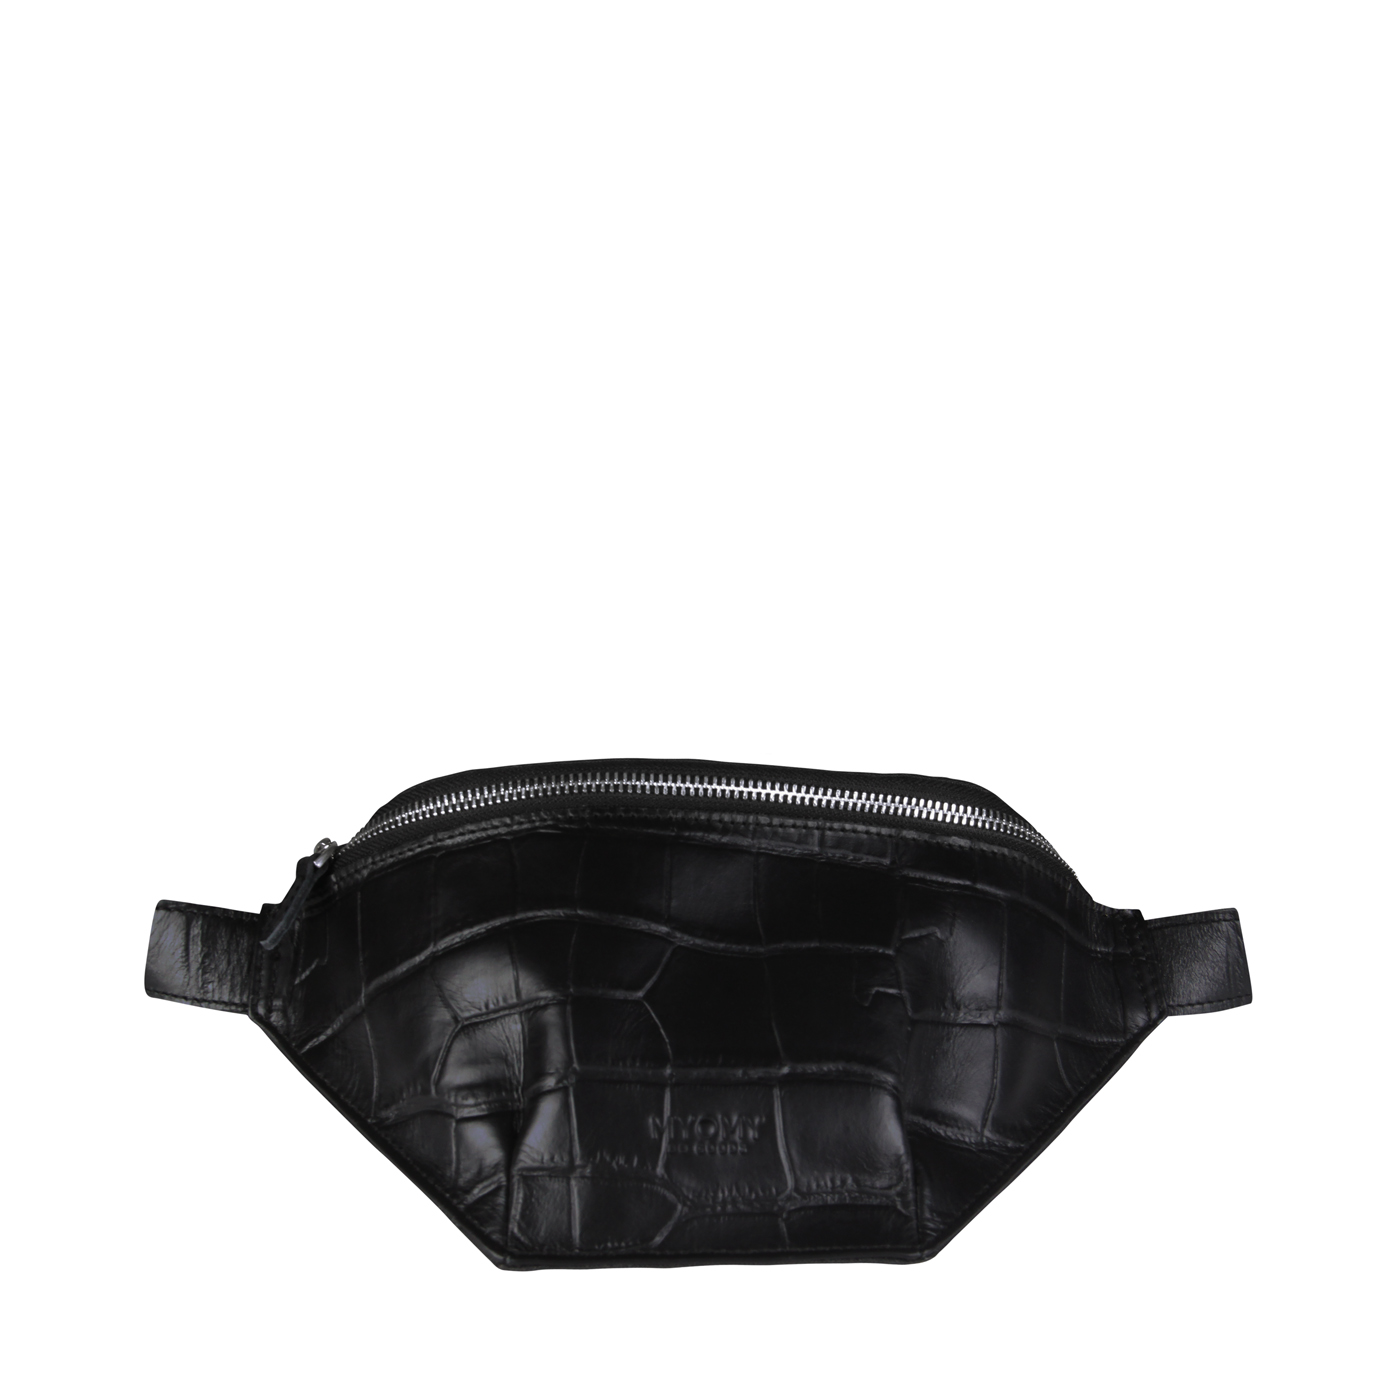 MY TREASURE BAG Waistbag – croco black & recycled plastic